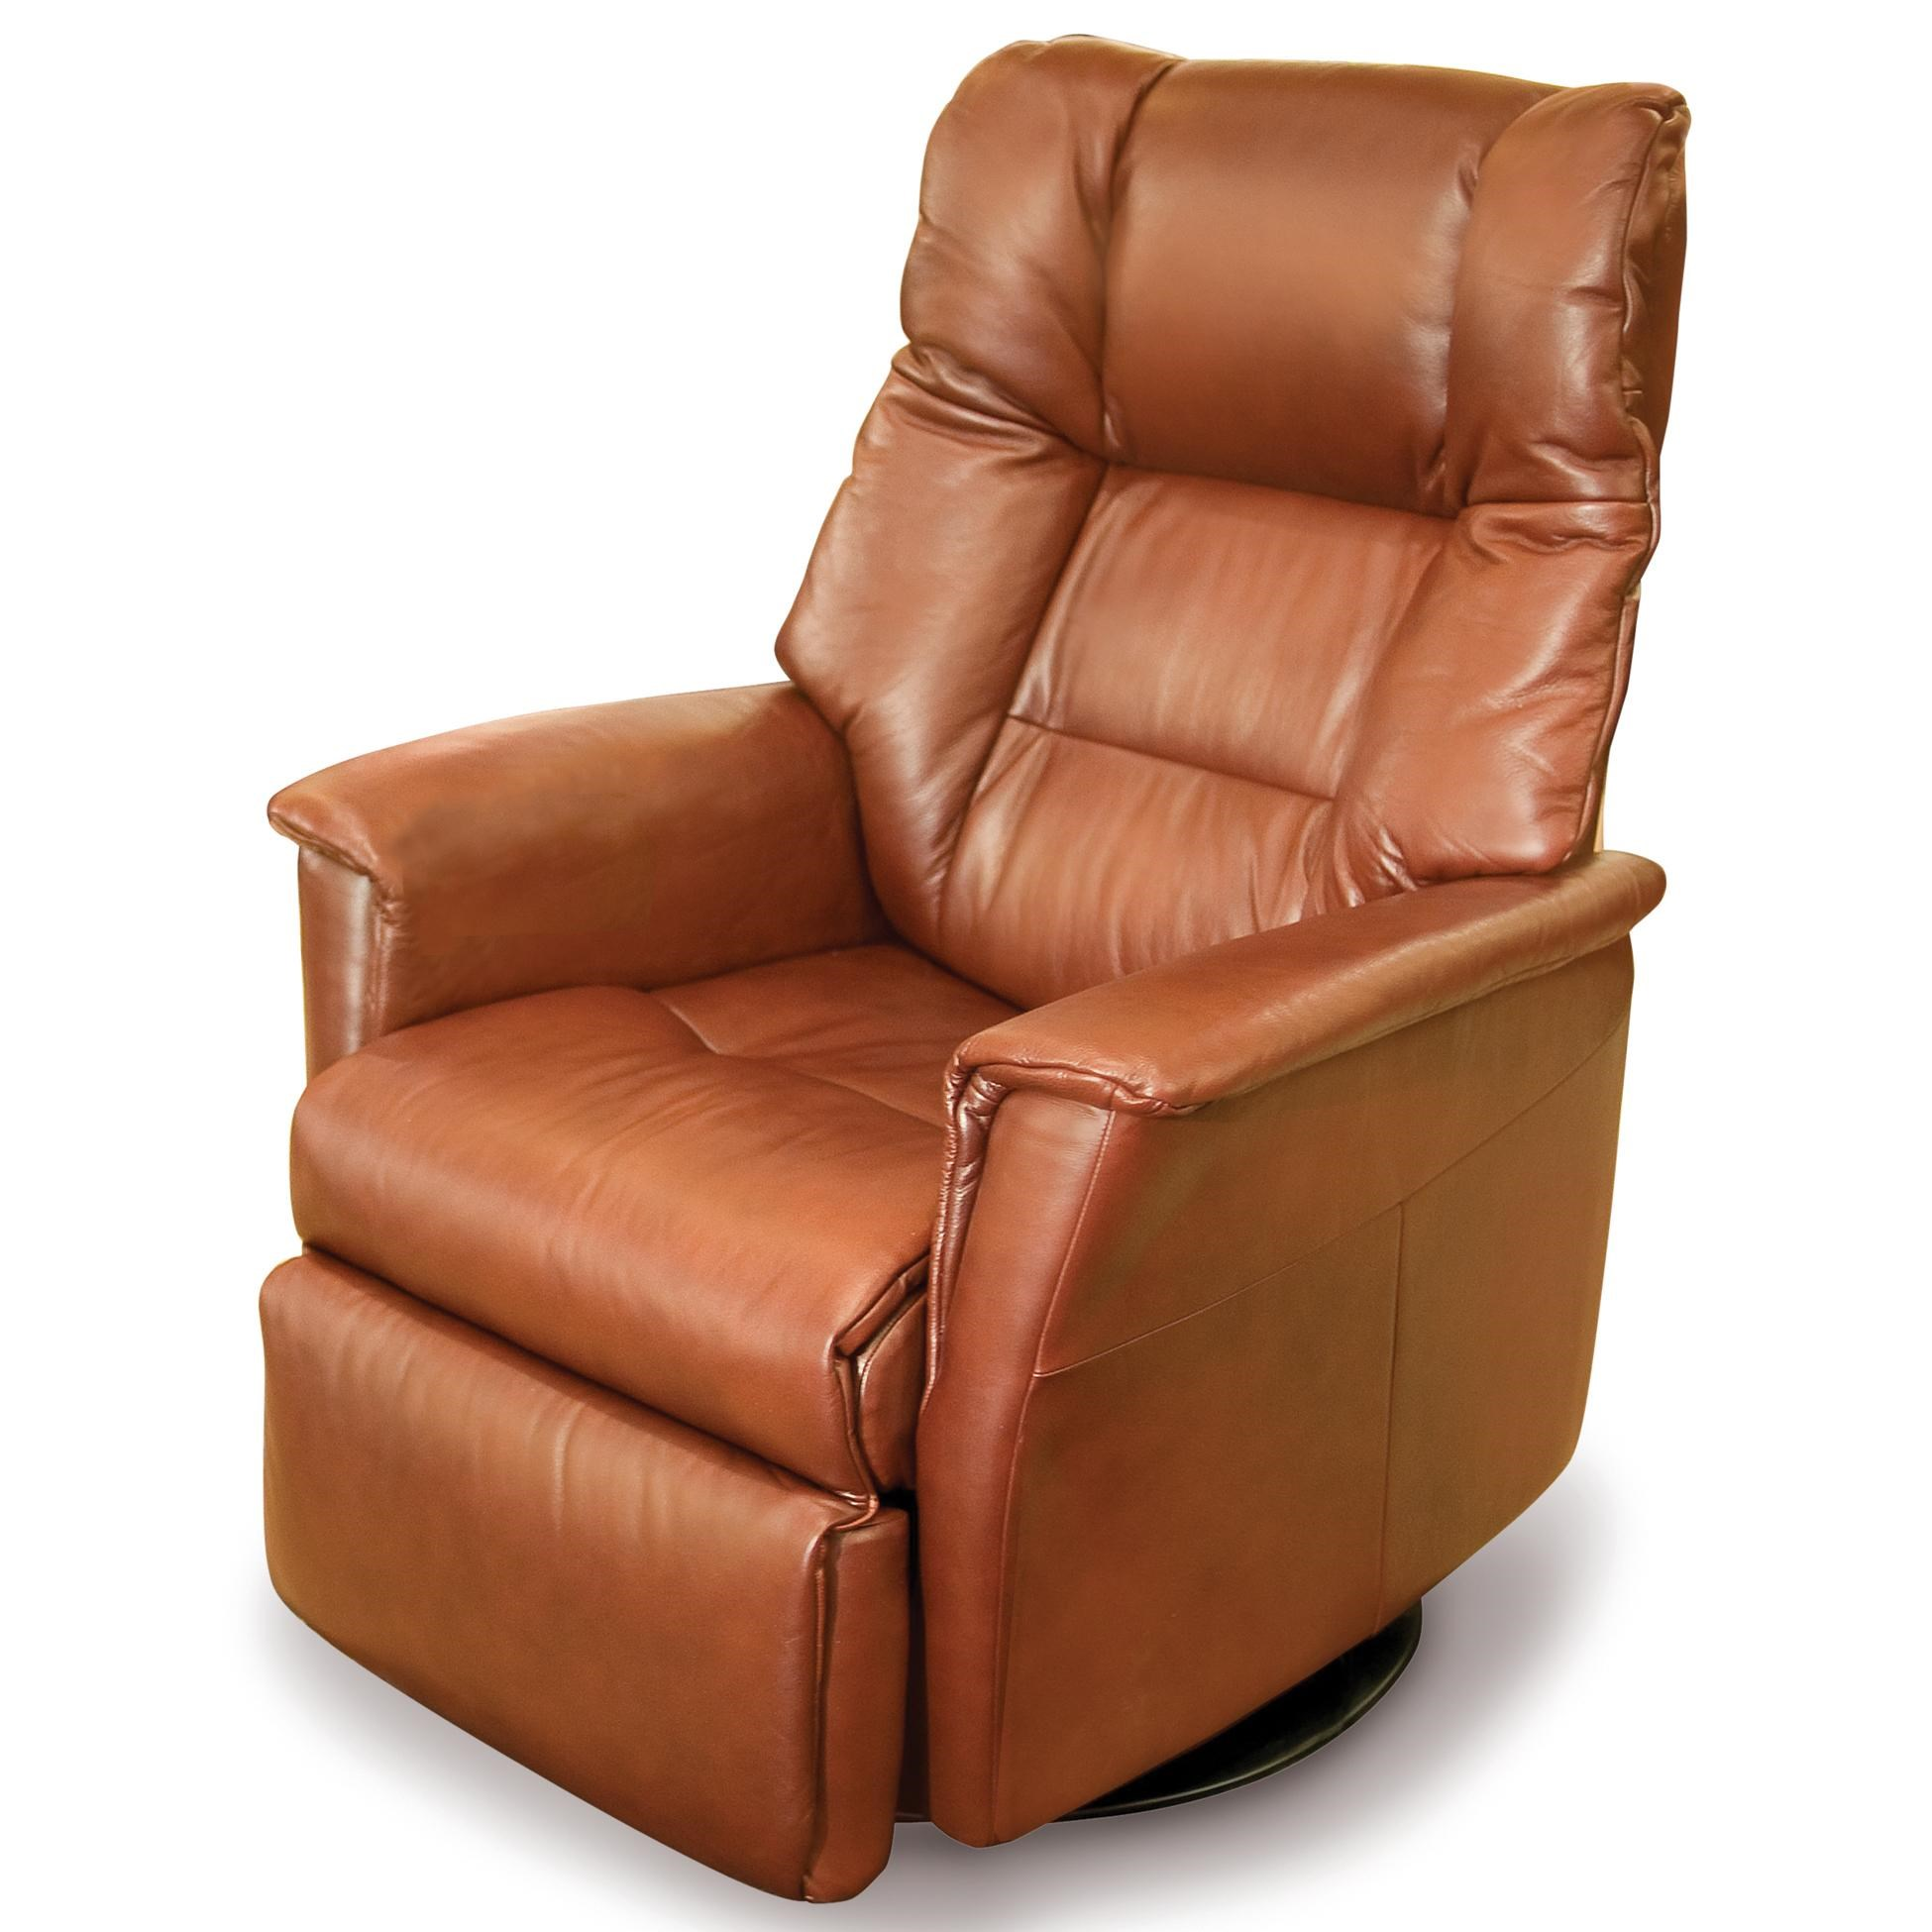 Elegant Vendor 508 ReclinersRecliner Relaxer